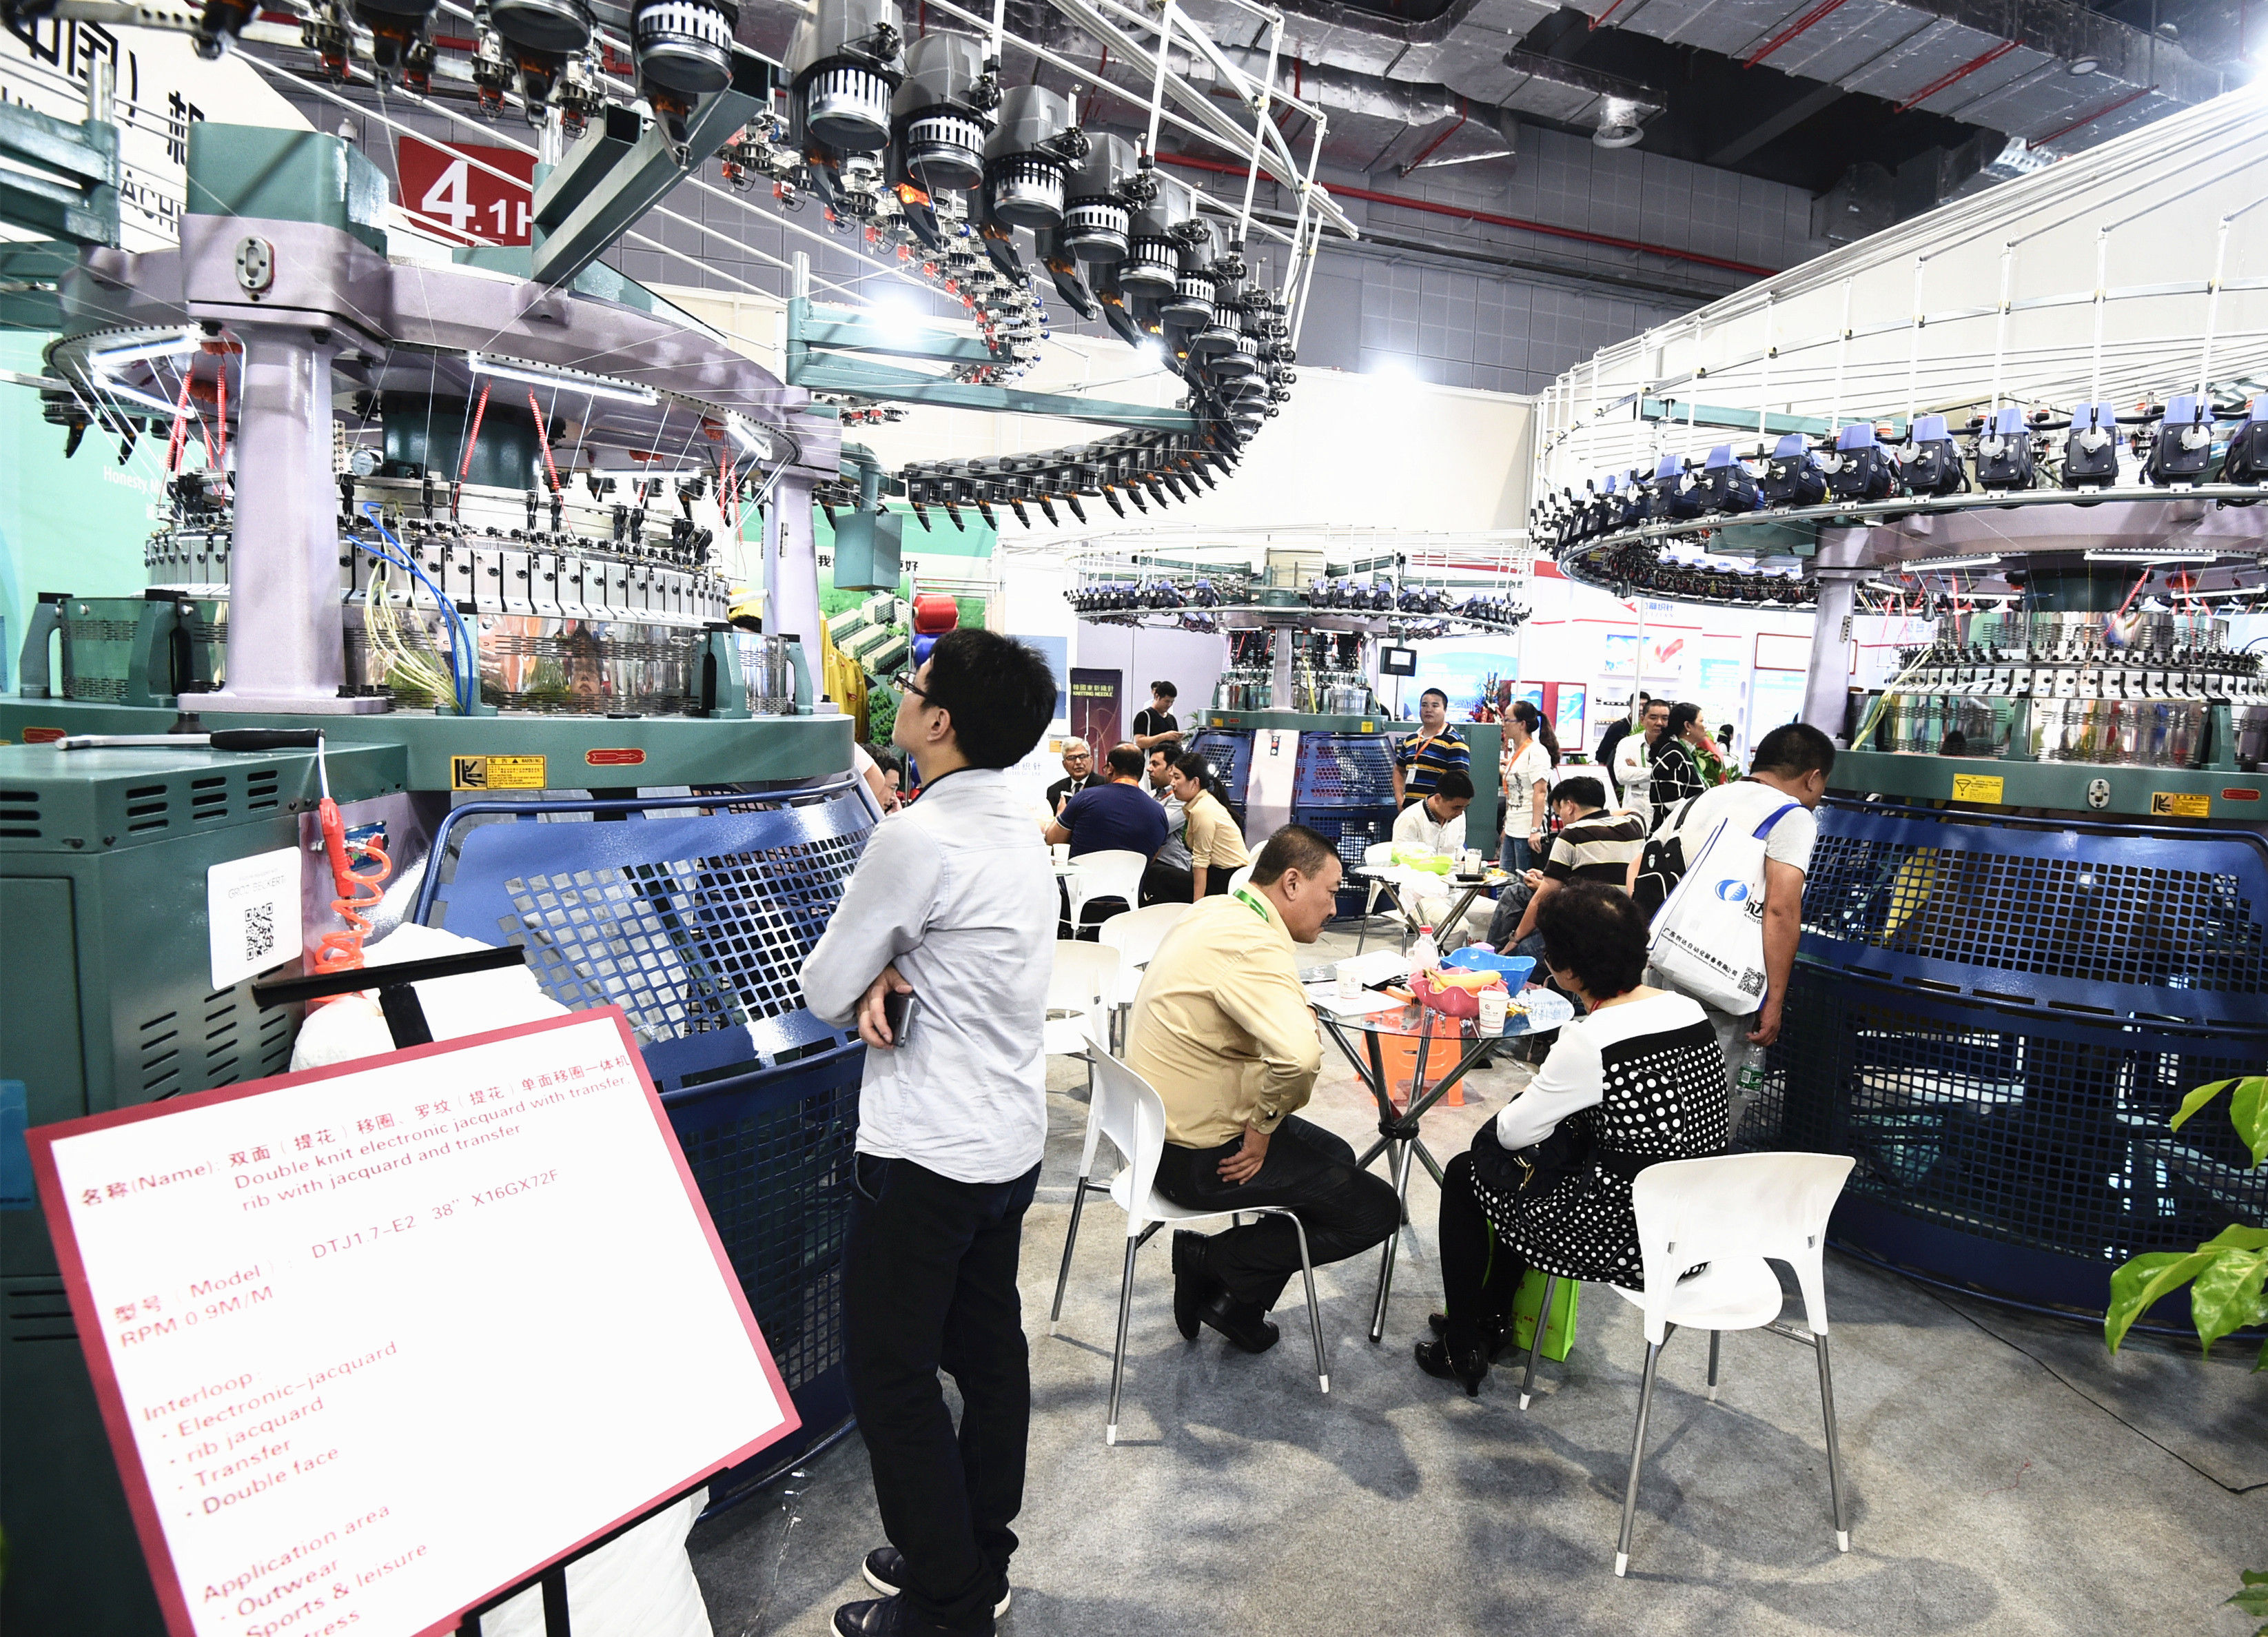 The exhibition is expected to feature some 1,700 local and international textile machinery makers from 28 economies. © ITMA Asia + CITME